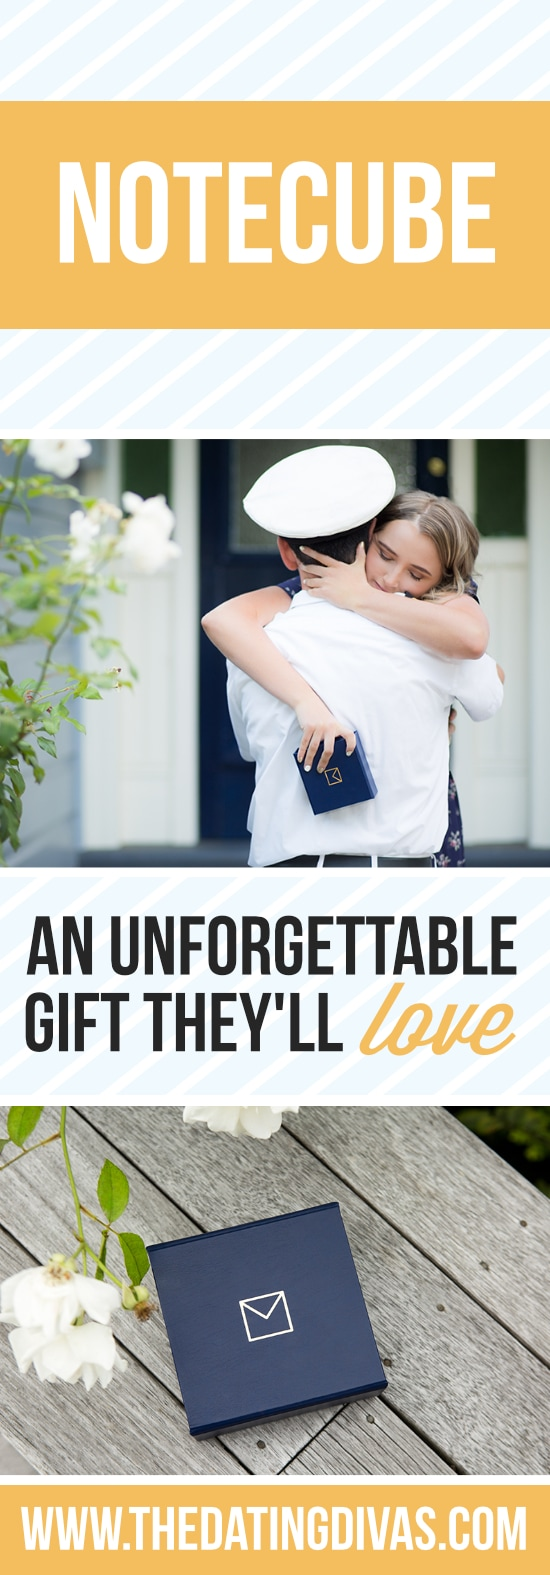 NoteCube makes a meaningful gift they will cherish forever!